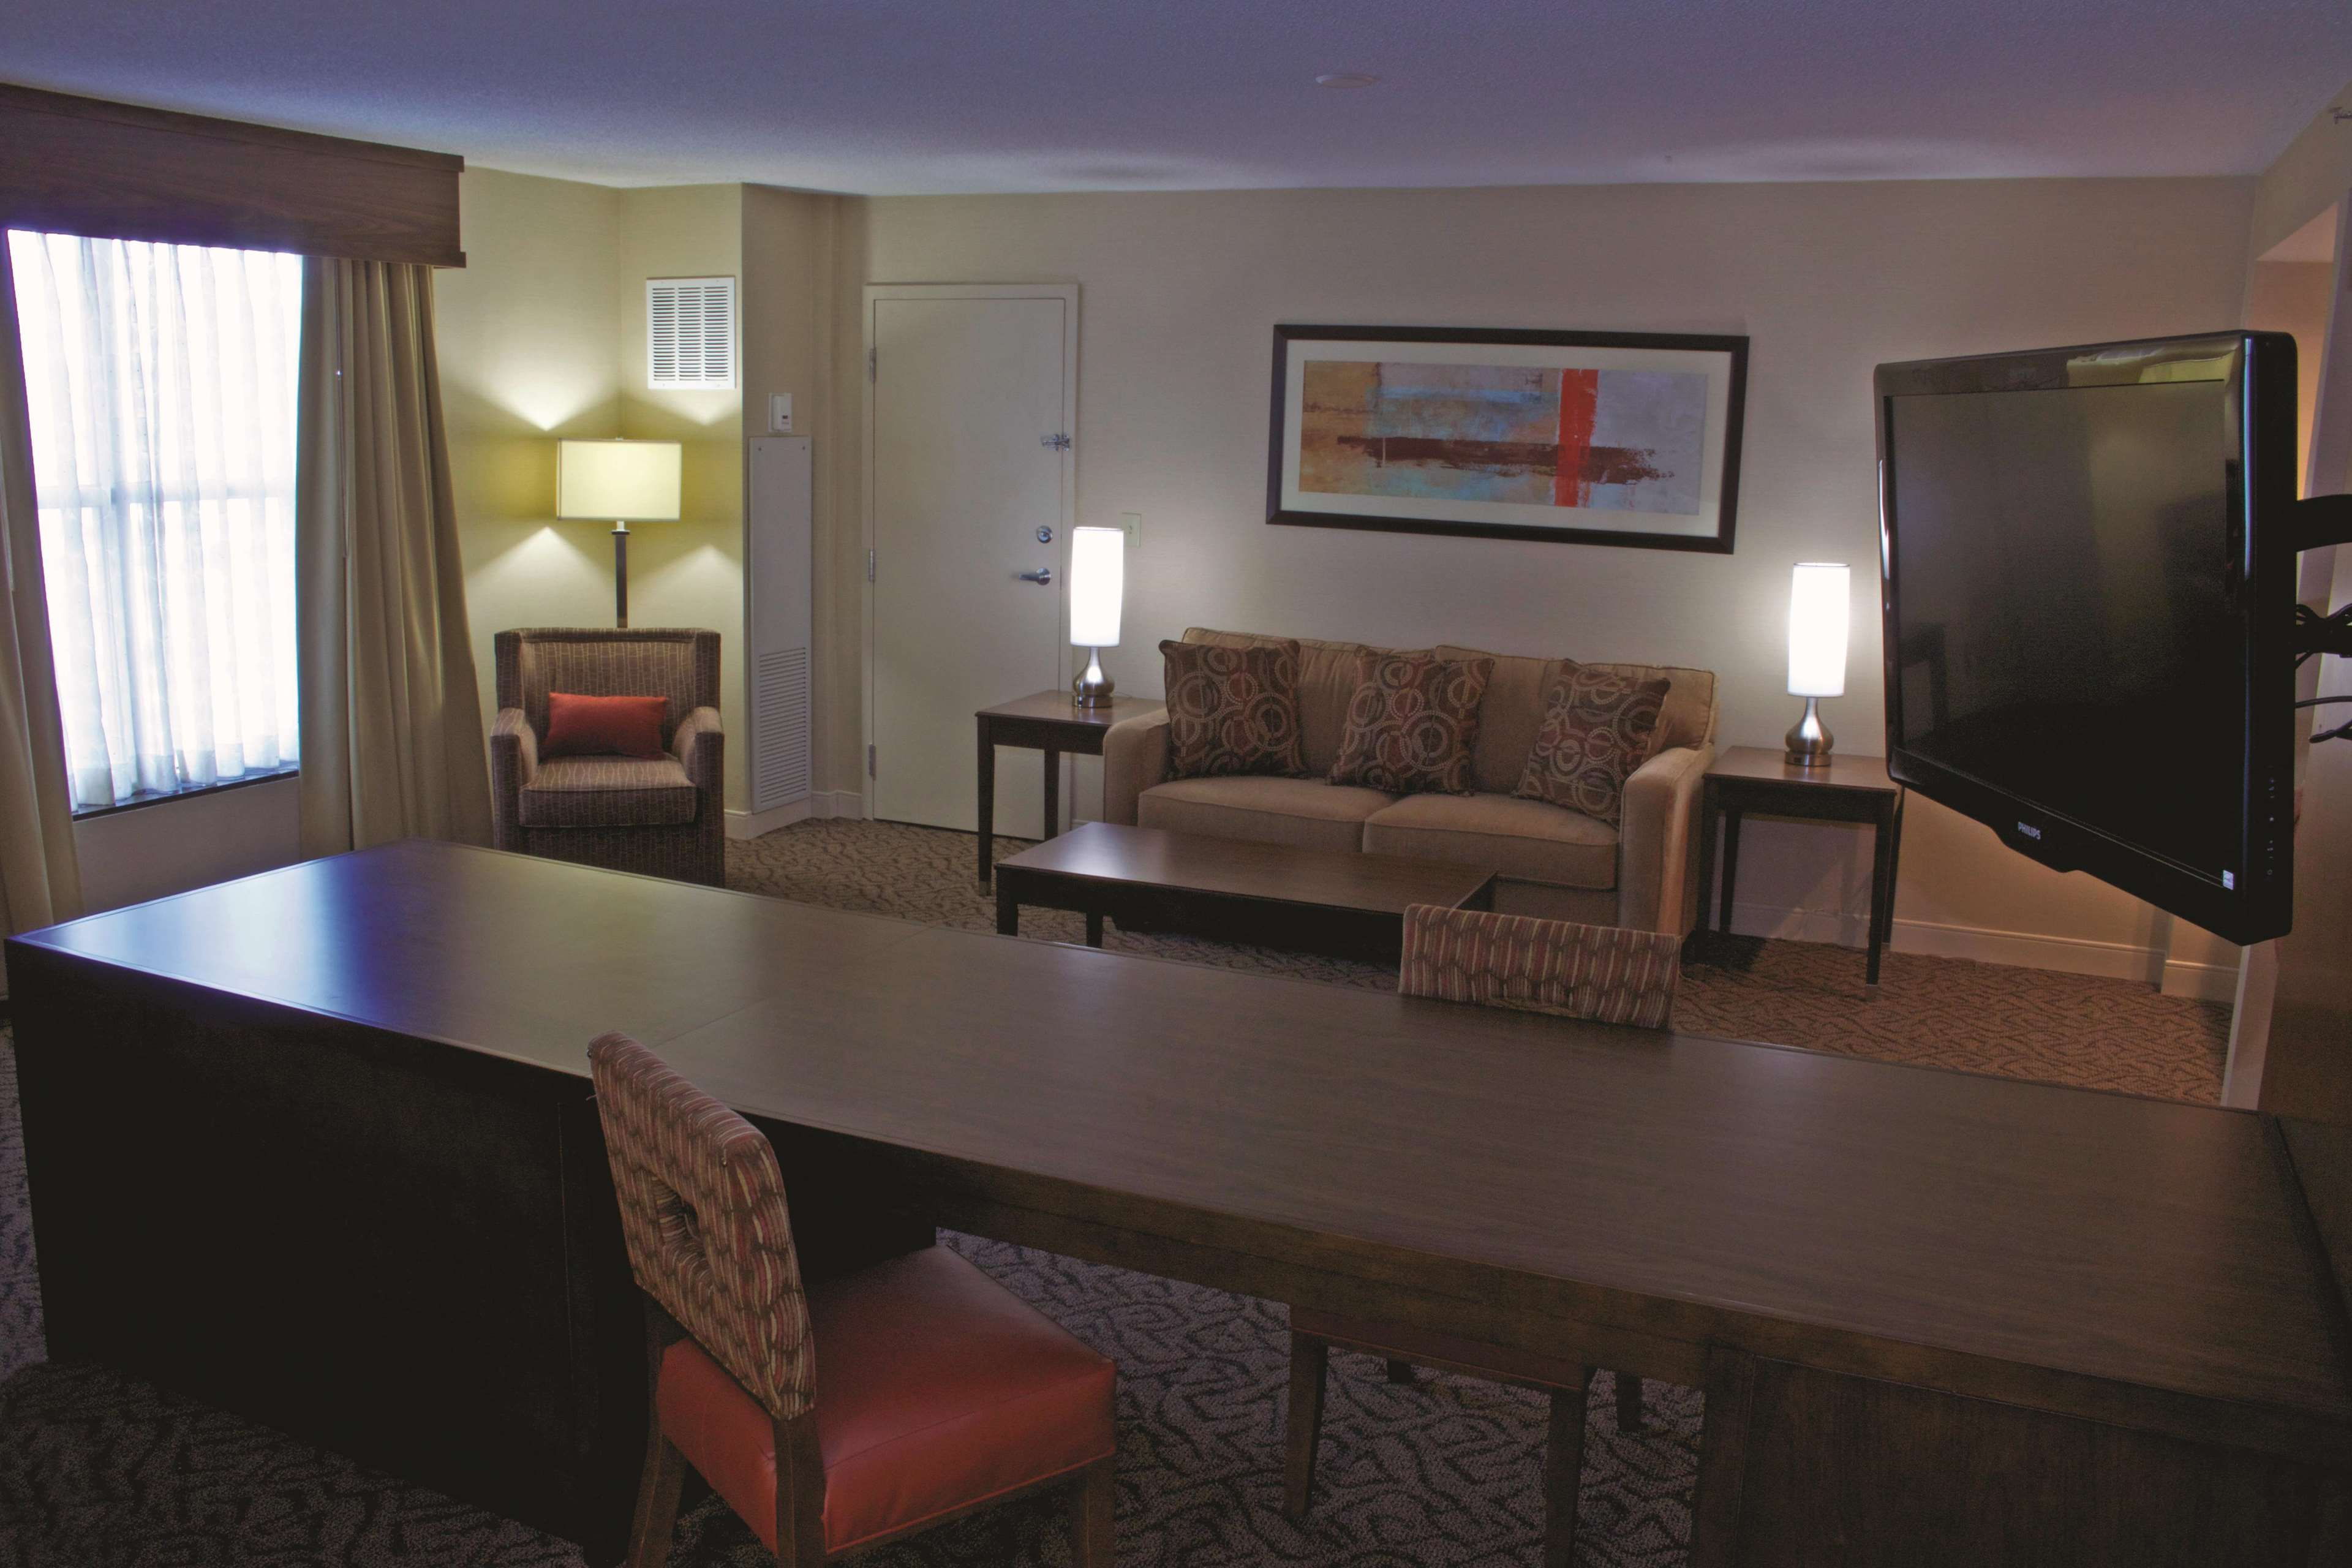 DoubleTree by Hilton Hotel Norfolk Airport image 10